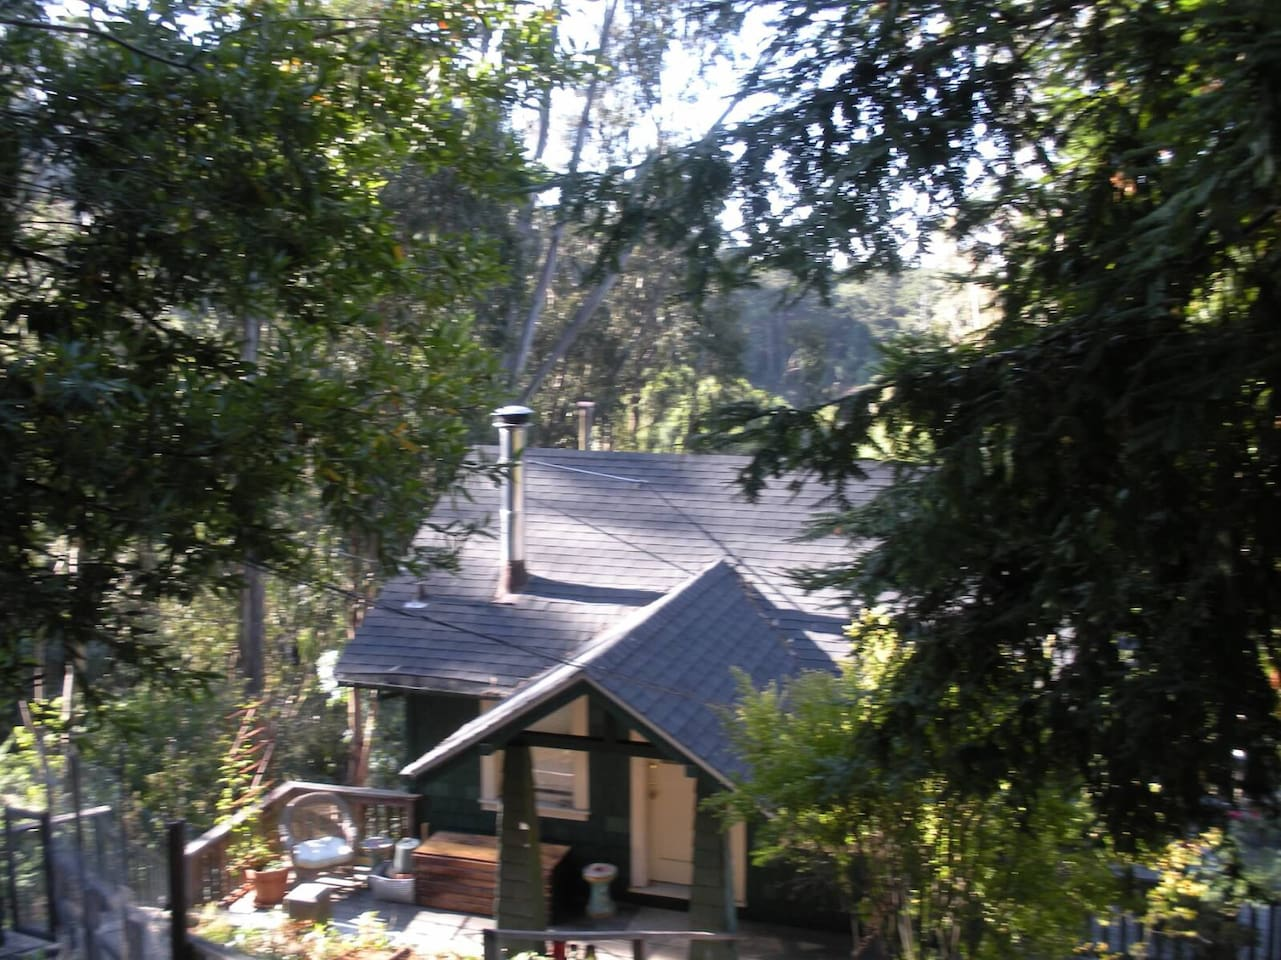 Our cottage is nestled into the hill. Built in 1918, the builders chose bedrock to build on. The road was added later so there are over 60 steps to the main entrance of your stay.